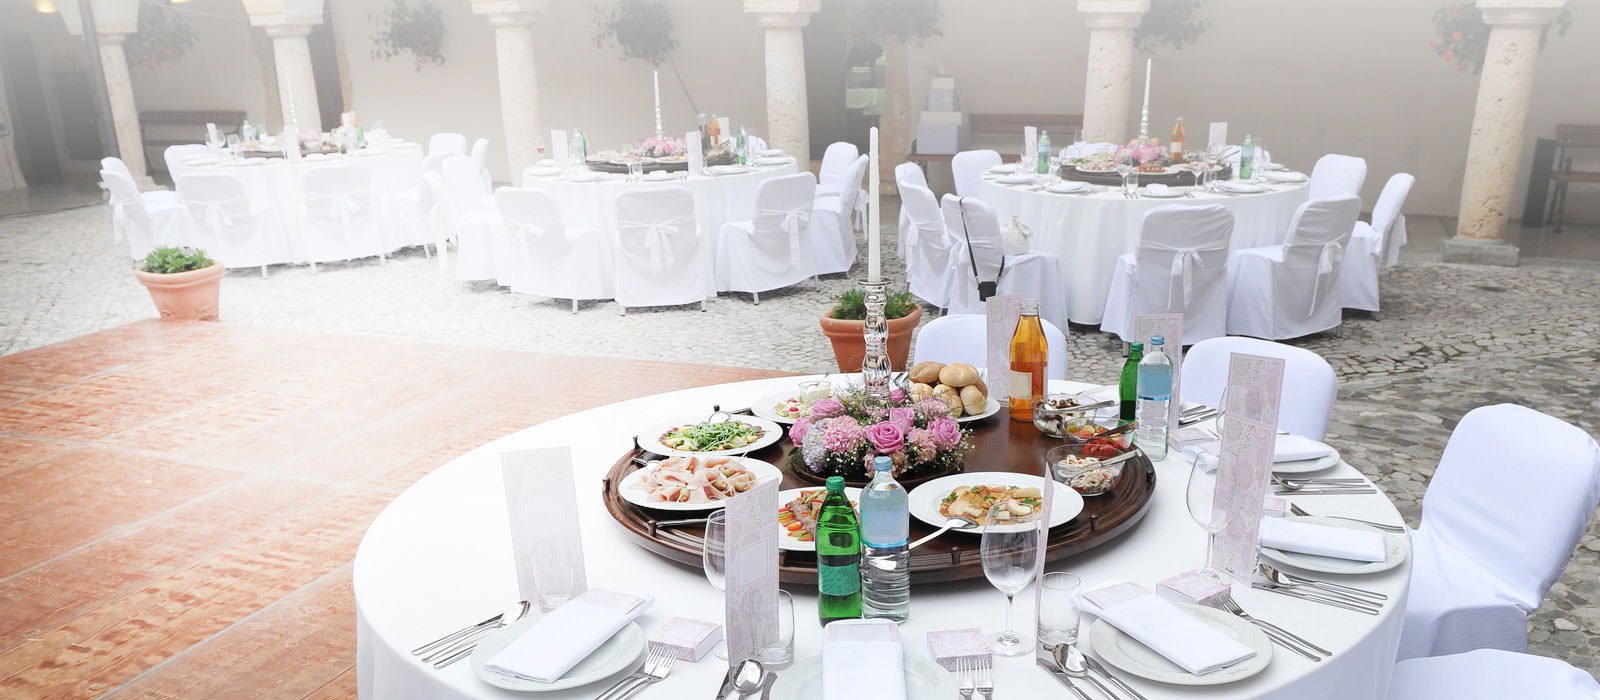 Weddings can be stressfule catering doesnt have to be junglespirit Choice Image